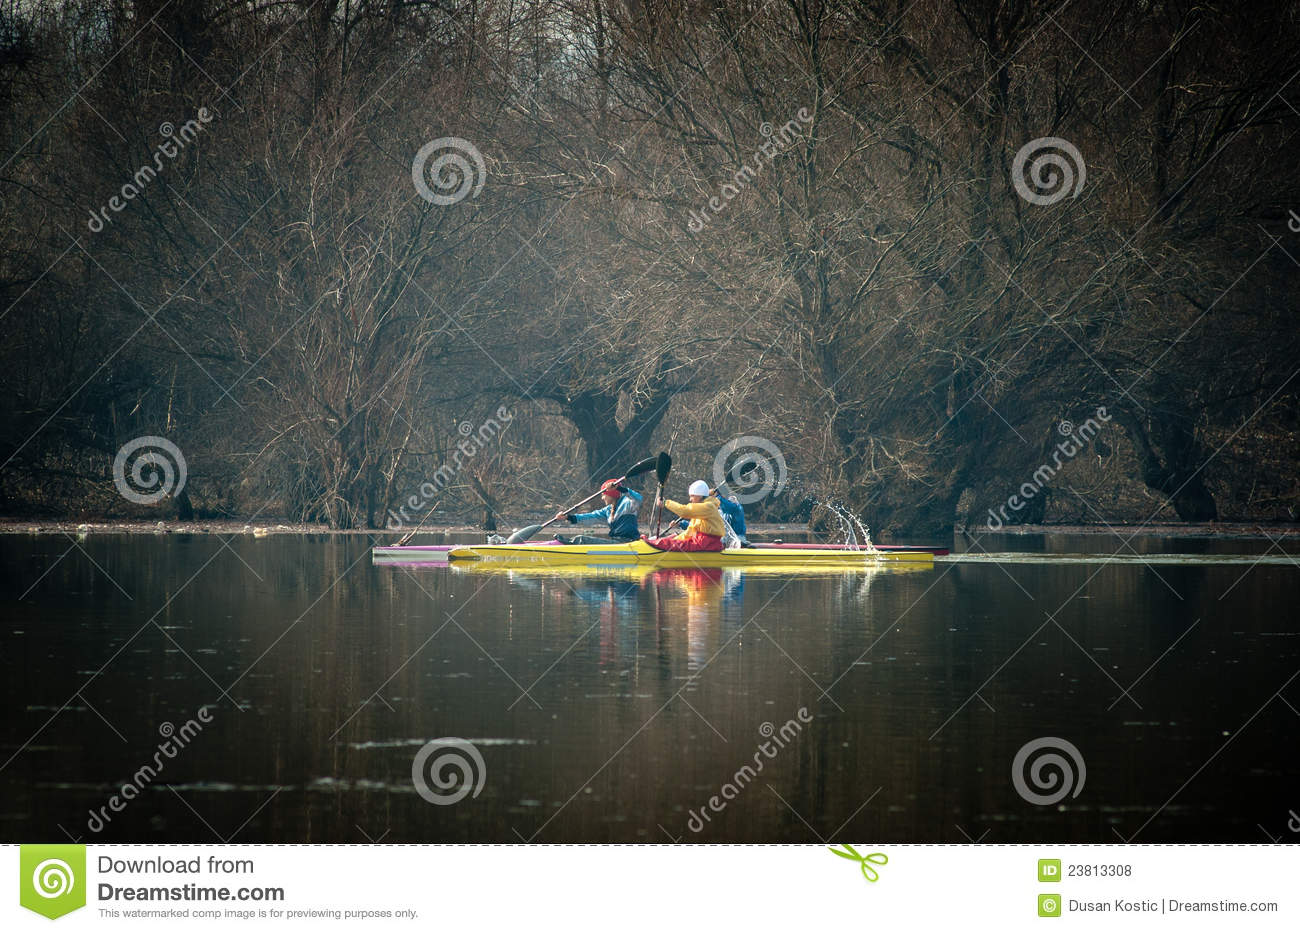 Kayaking on the river